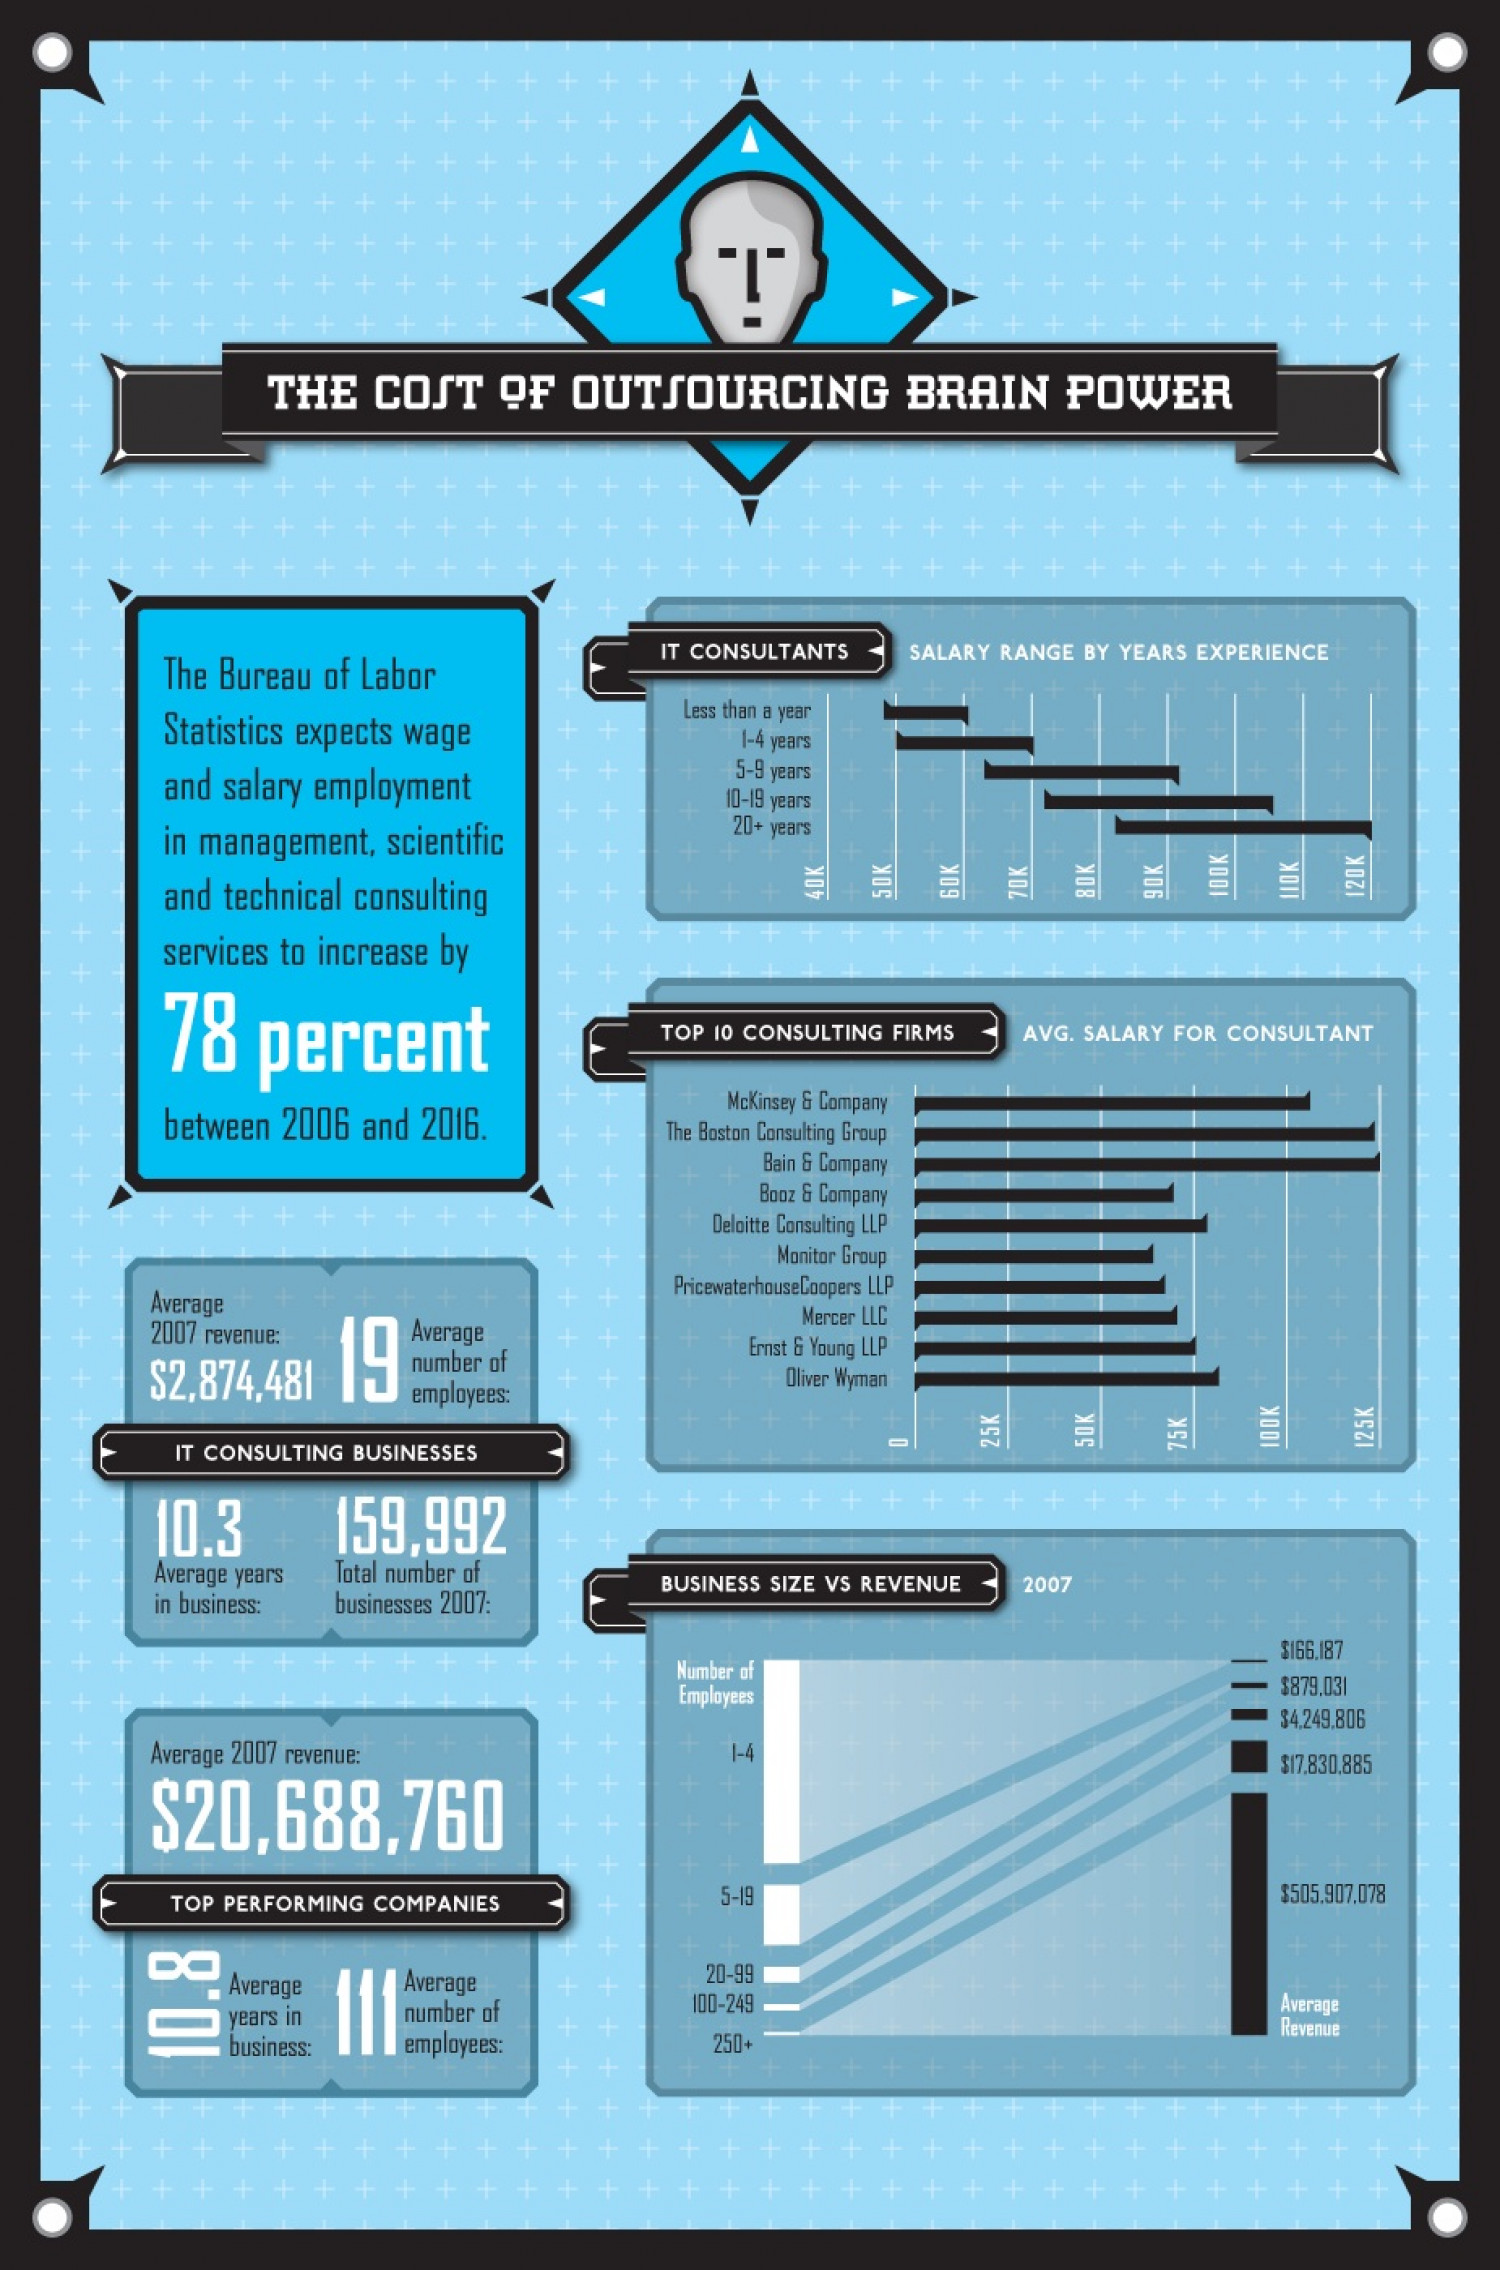 The Cost of Outsourcing Brain Power Infographic